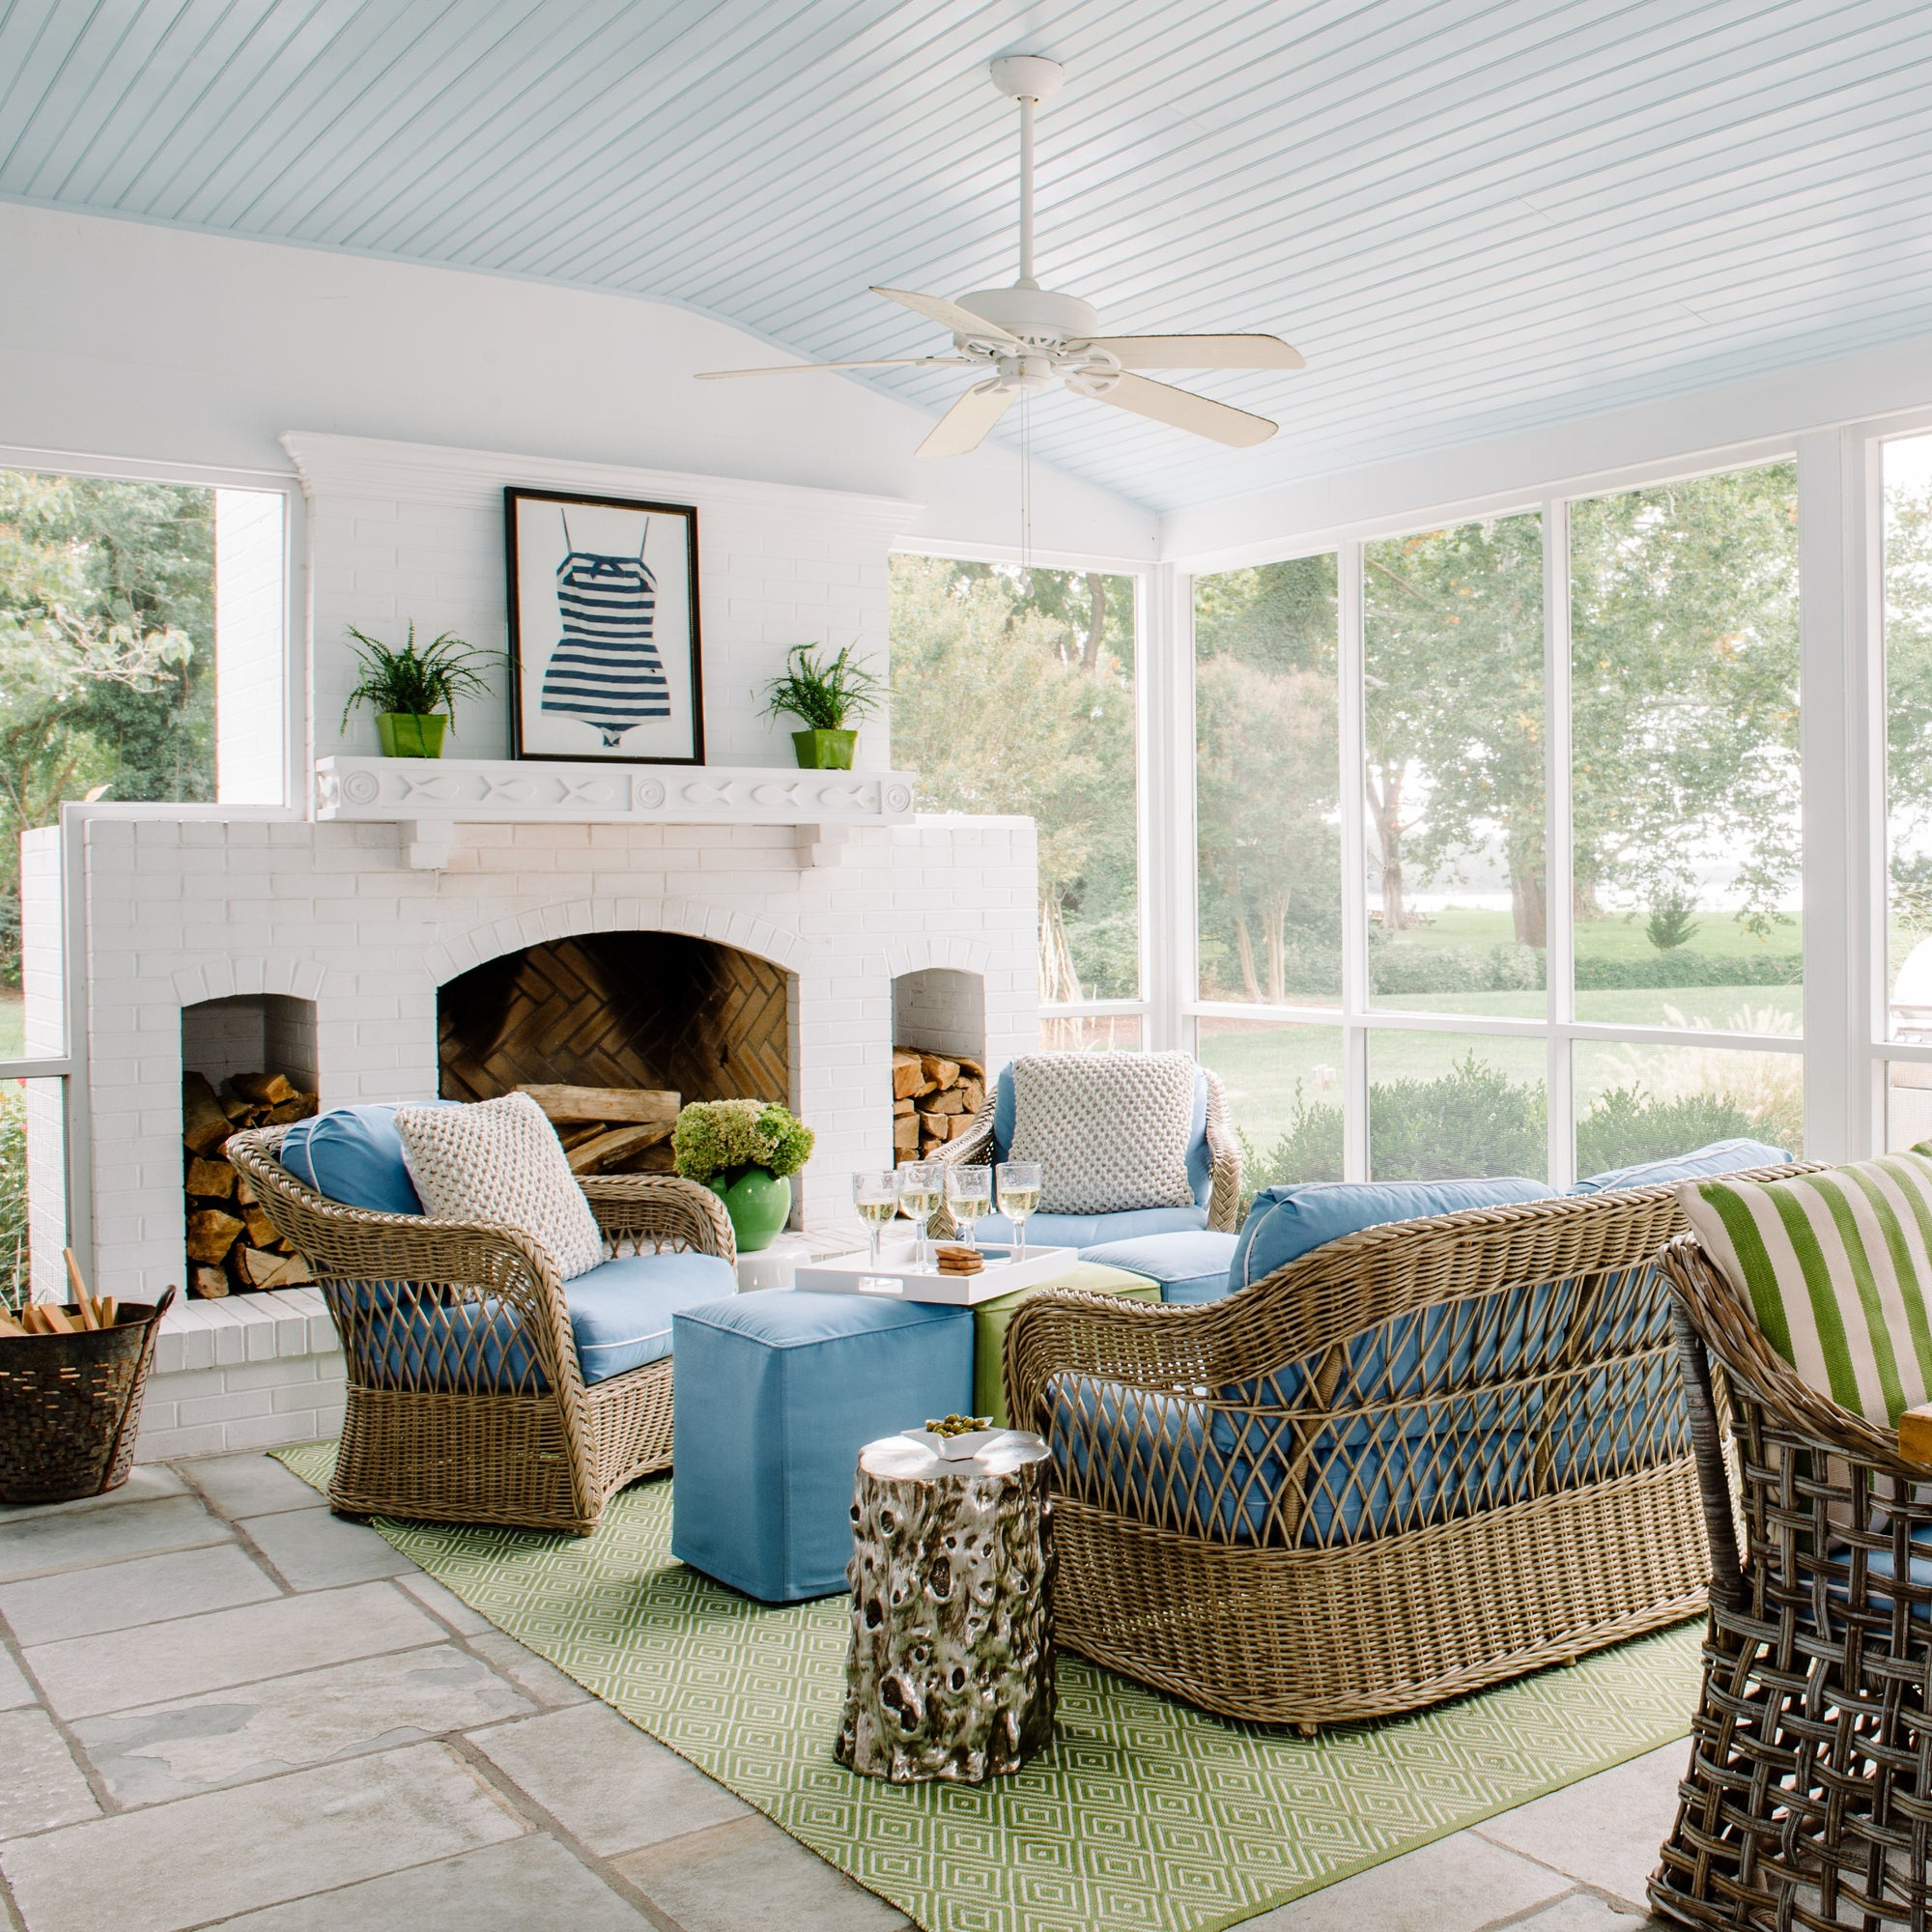 Large porch with white fireplace, soft blue ceiling and wicker furniture with green and blue accents. Interior design by Jamie Merida.